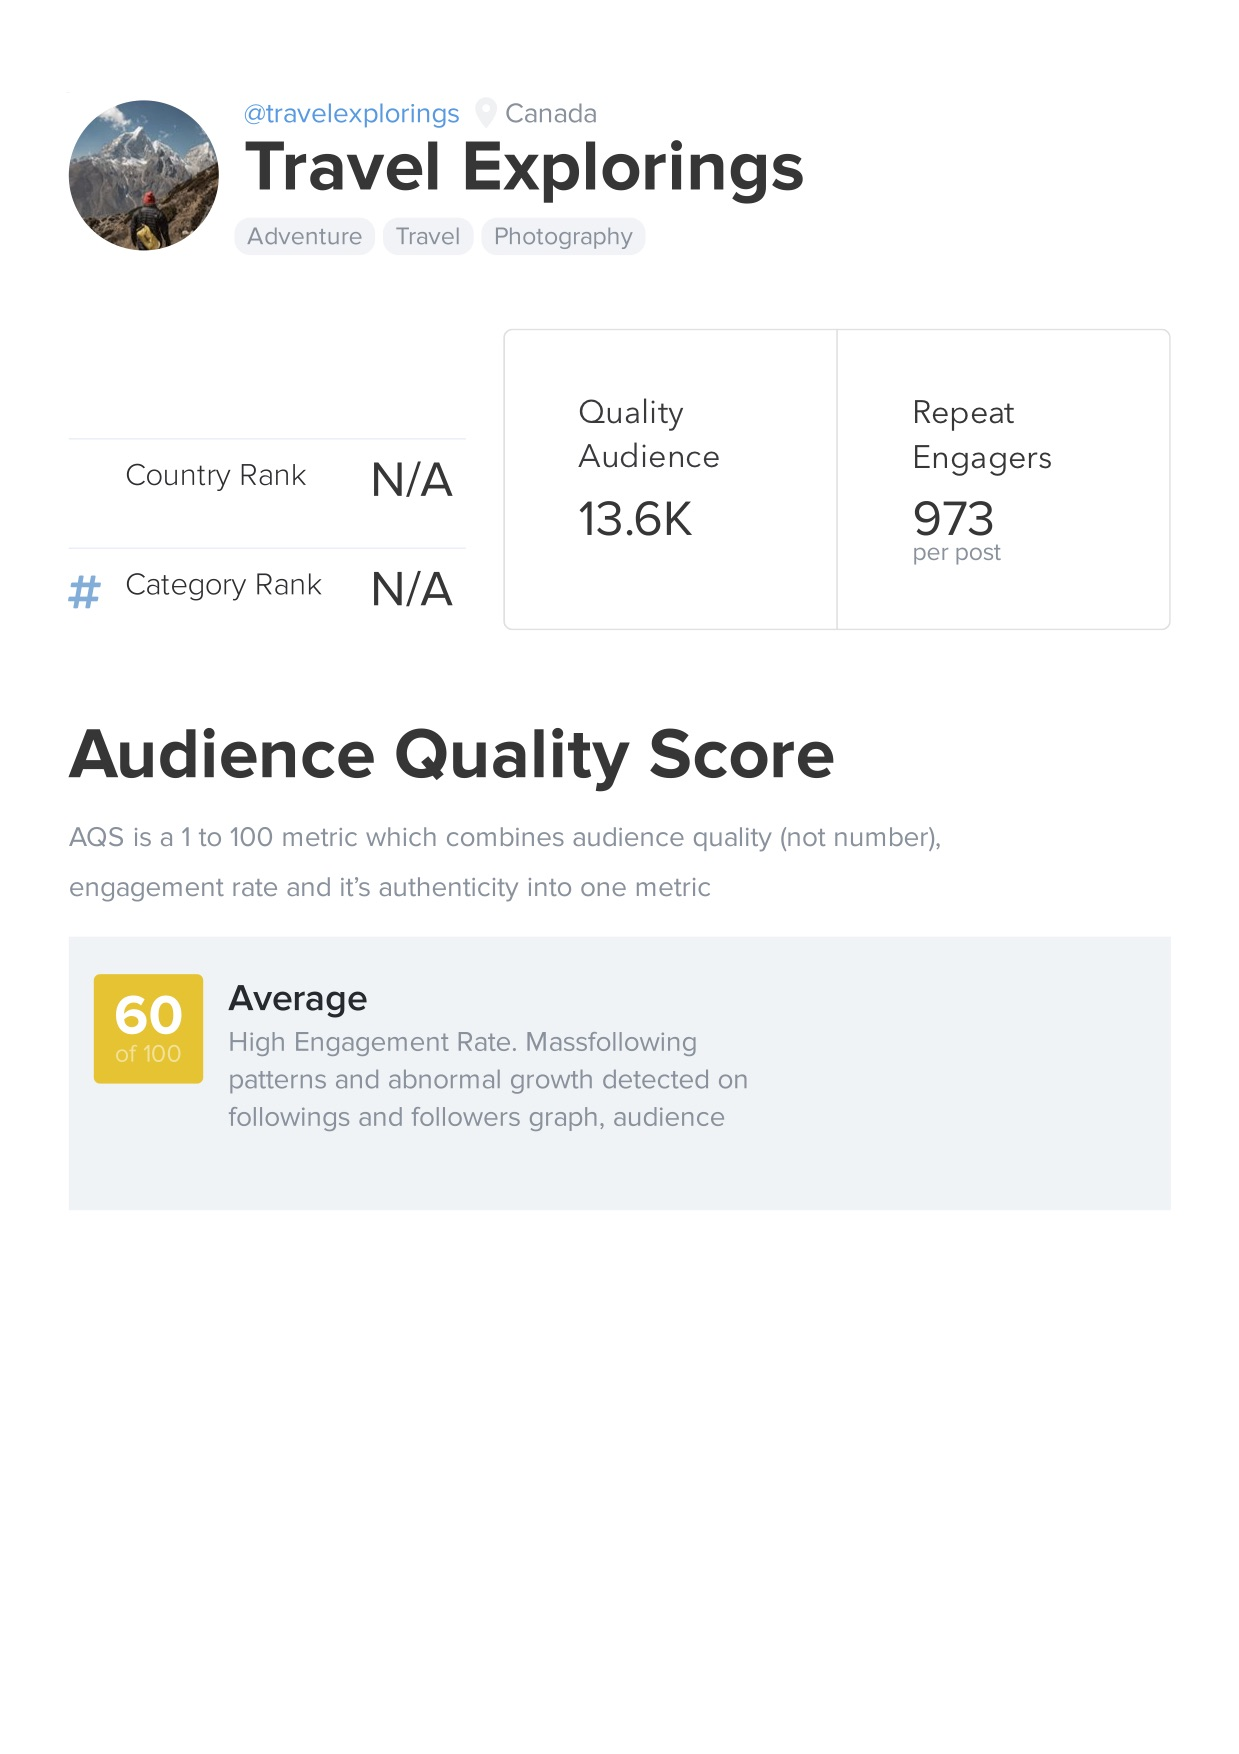 Buy a 19k Instagram account with analytics